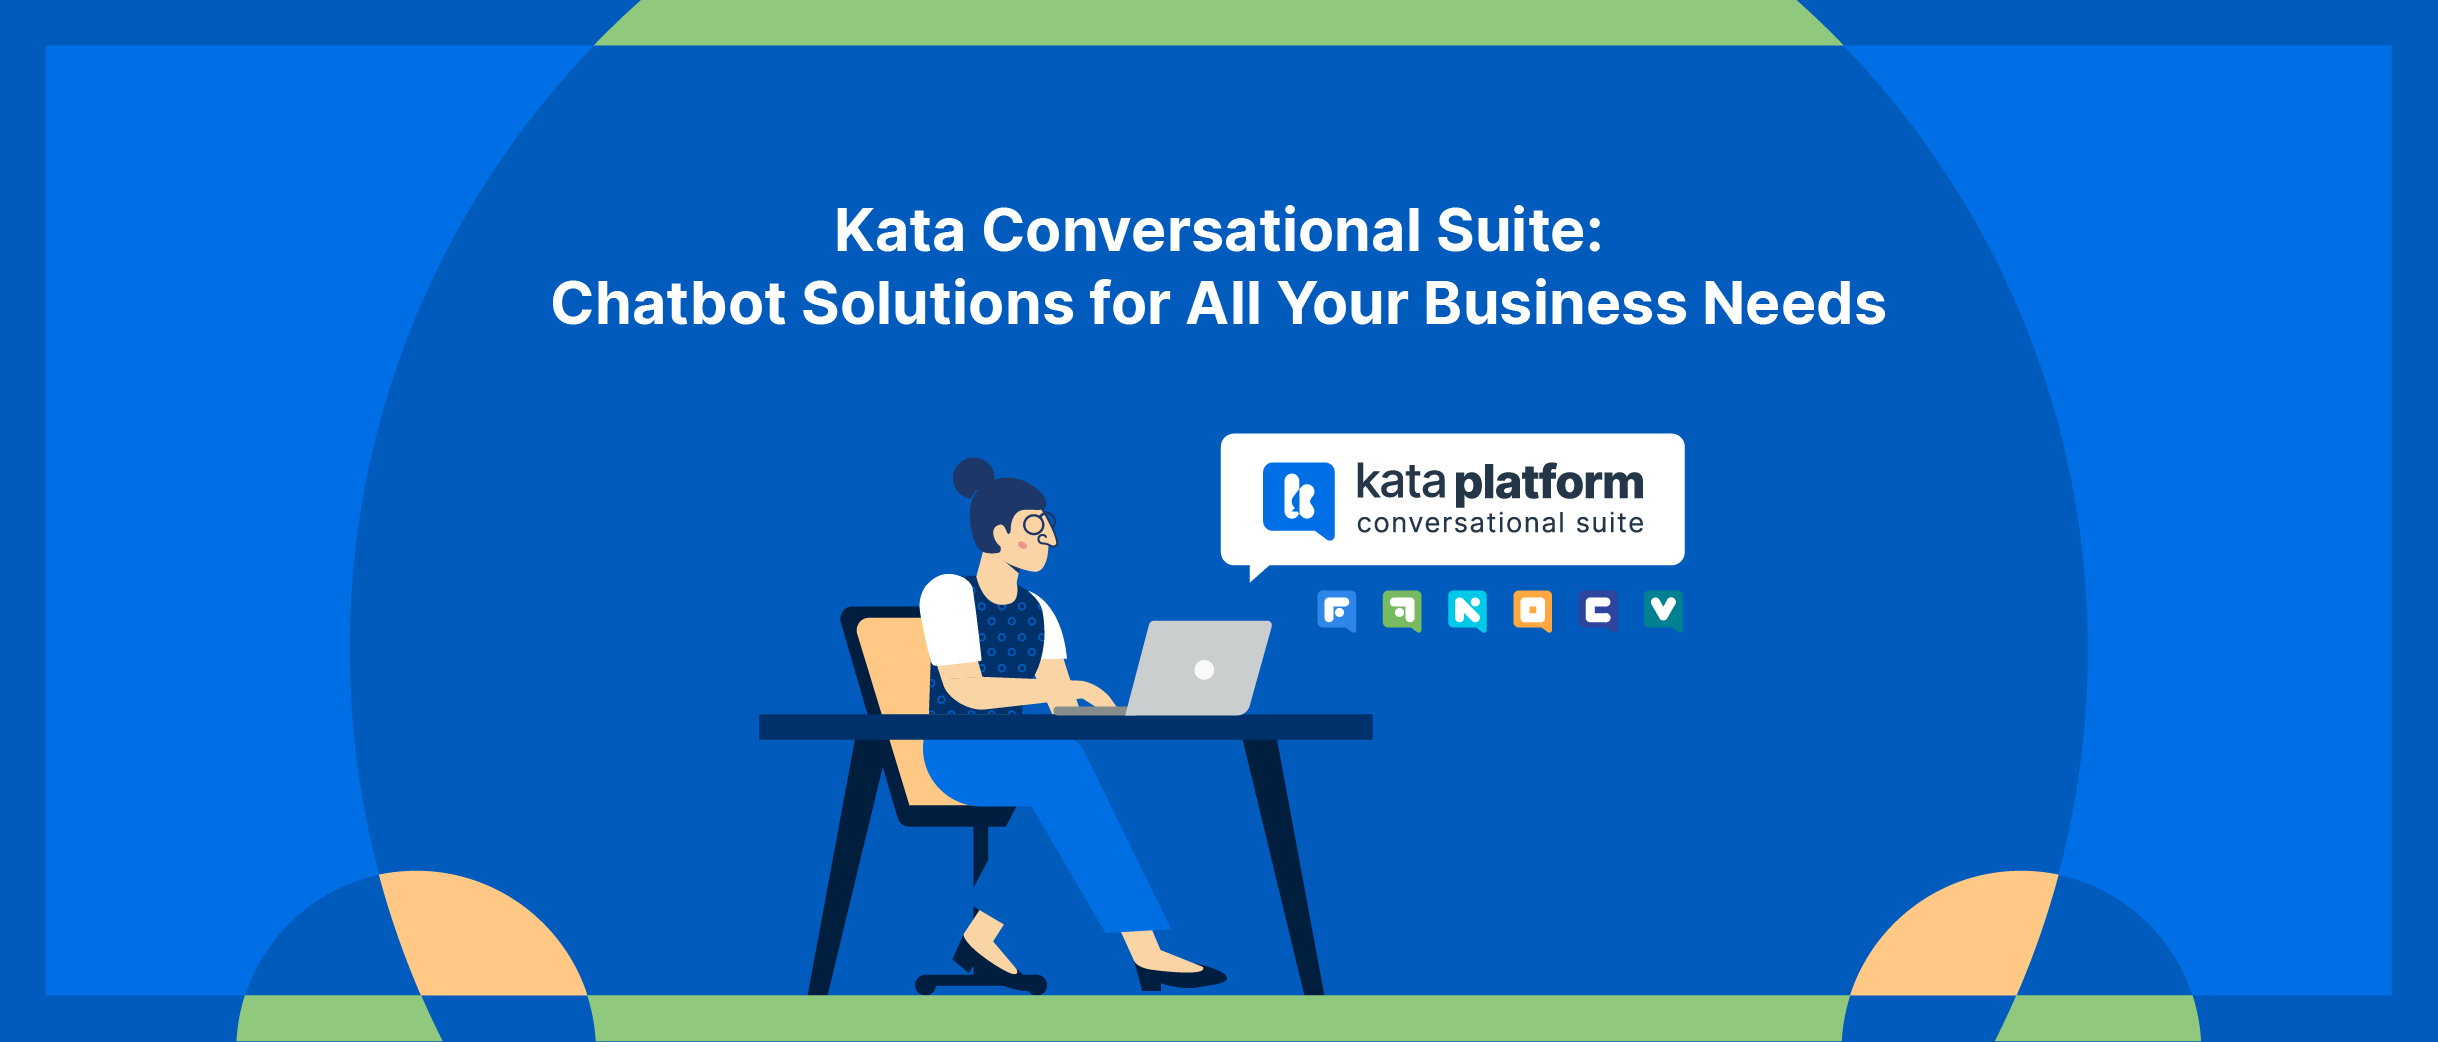 Kata Conversational Suite is Kata.ai's one-stop solution for all your conversation needs, from developing a smart chatbot with a natural conversation flow for your business to managing conversations across popular chat apps in one single omnichannel dashboard.